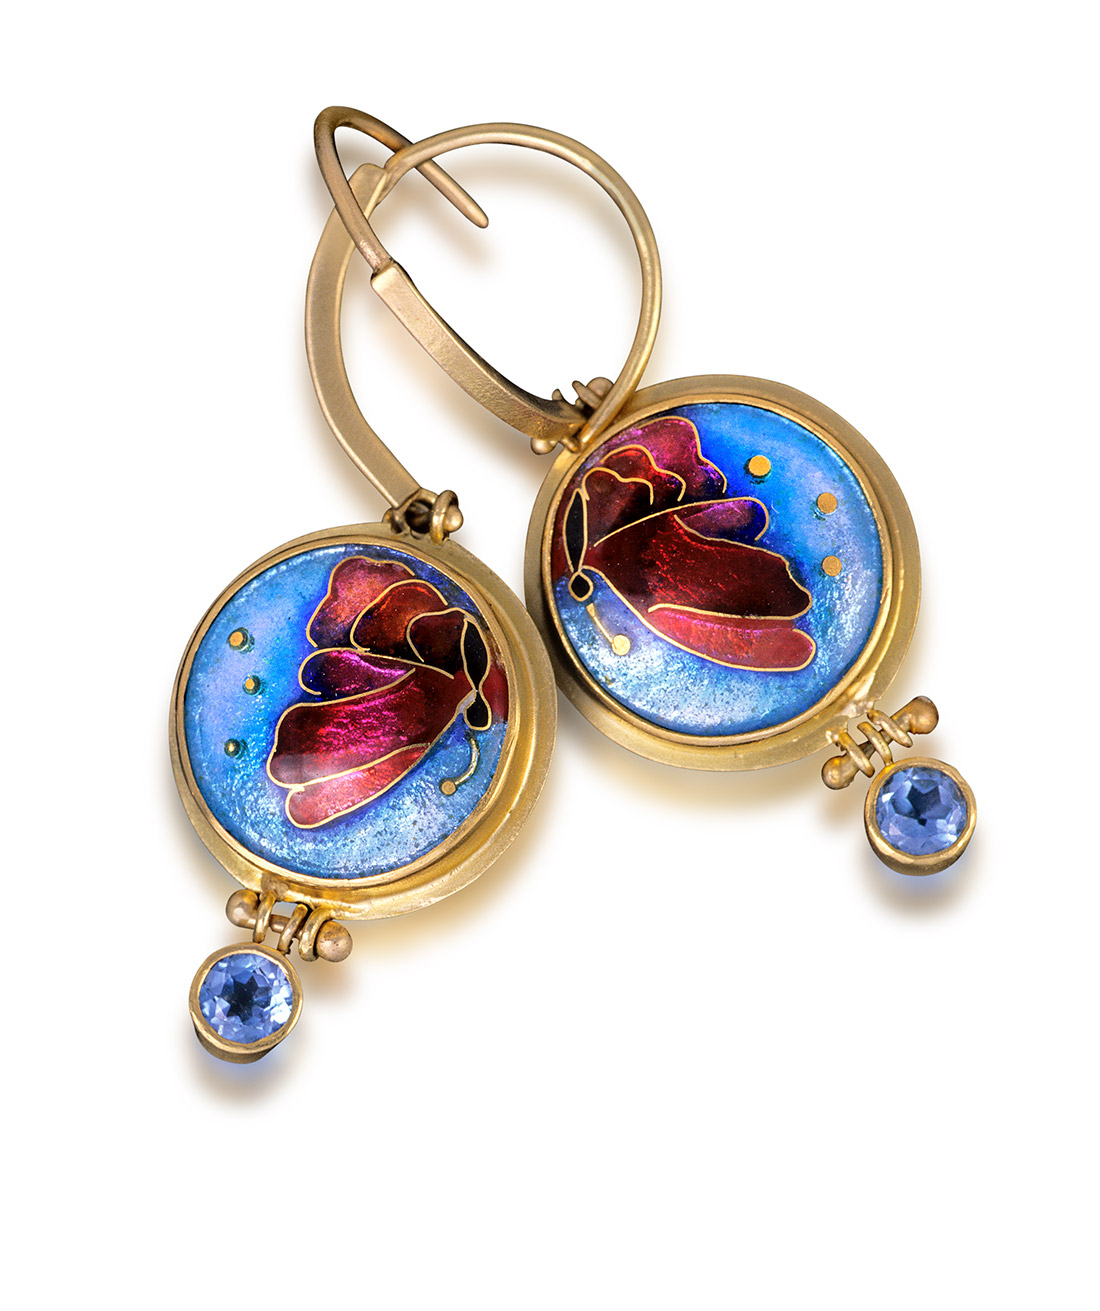 Cloisonne Jewelry | Lune Papillones | Enamel Jewelry by Patsy Croft